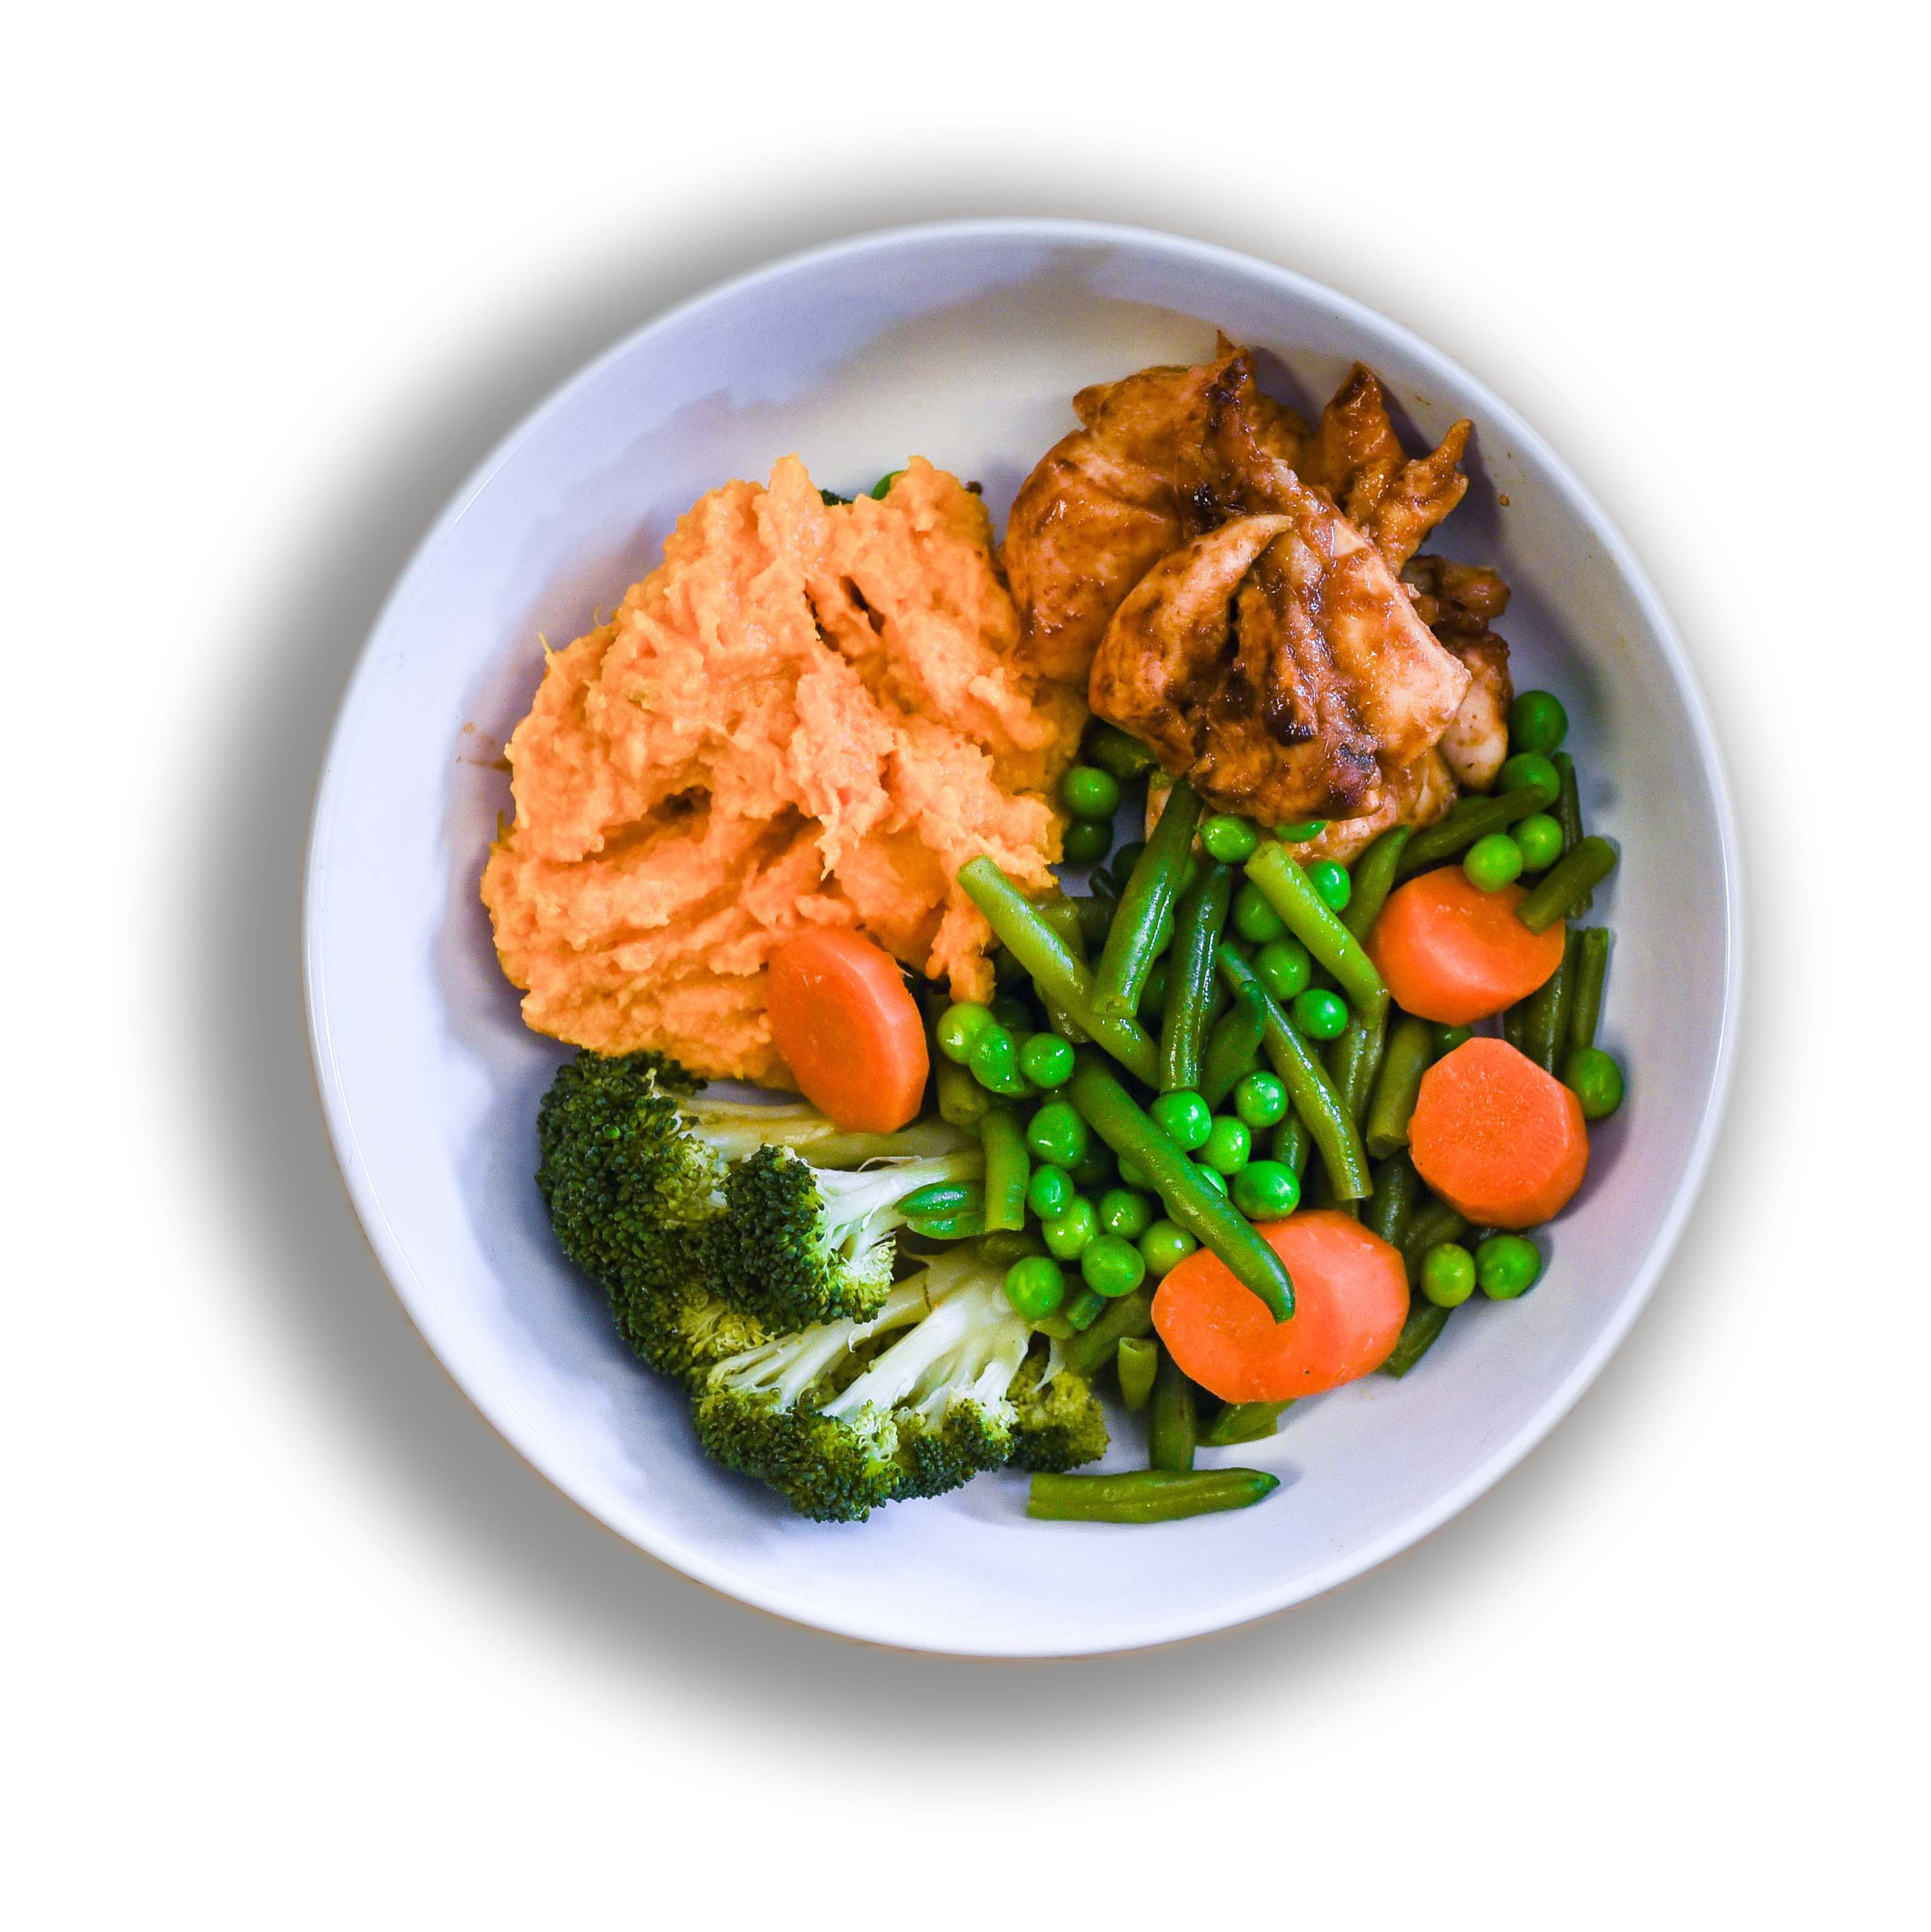 Smoked Hickory Bbq Chicken Served With Creamy Seasoned Sweet Potato Mash And A Medley Of Vegetables Regular Nutri Go Meals For Fitness